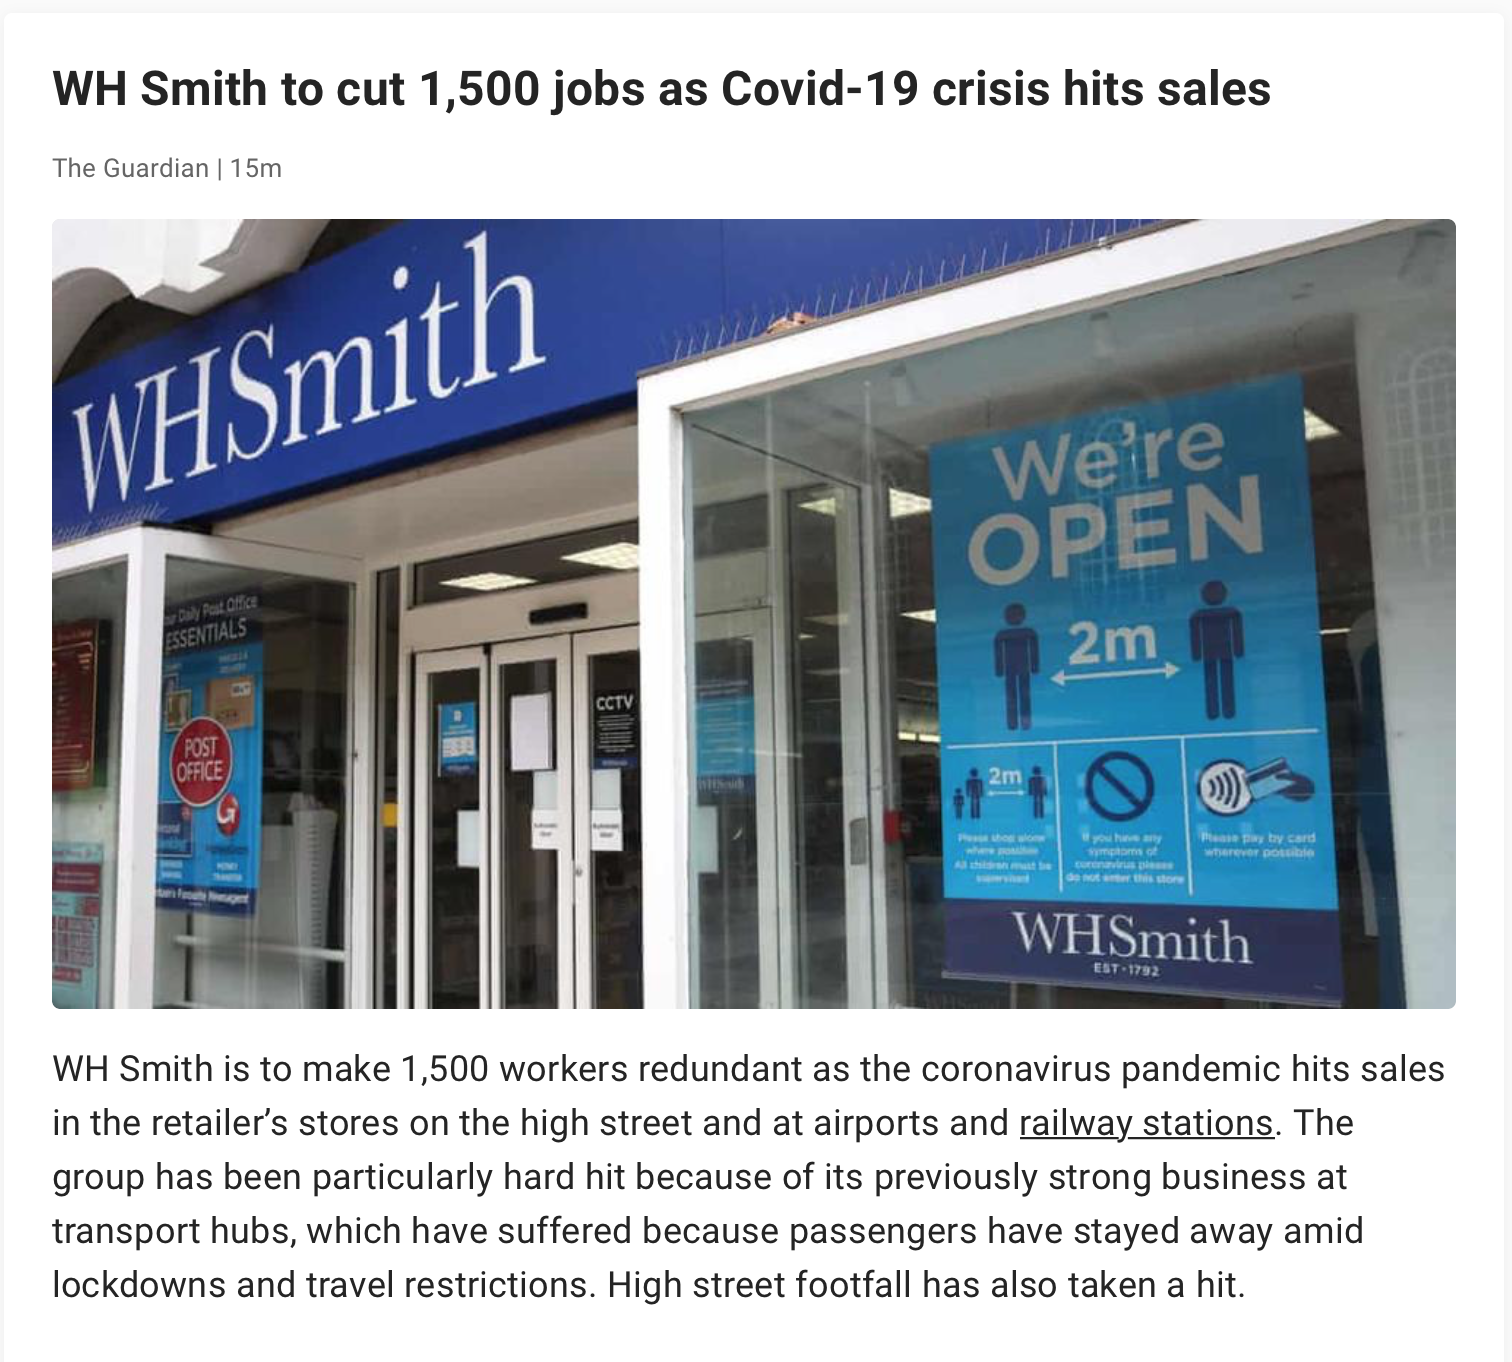 WHSmith shed 1500 jobs